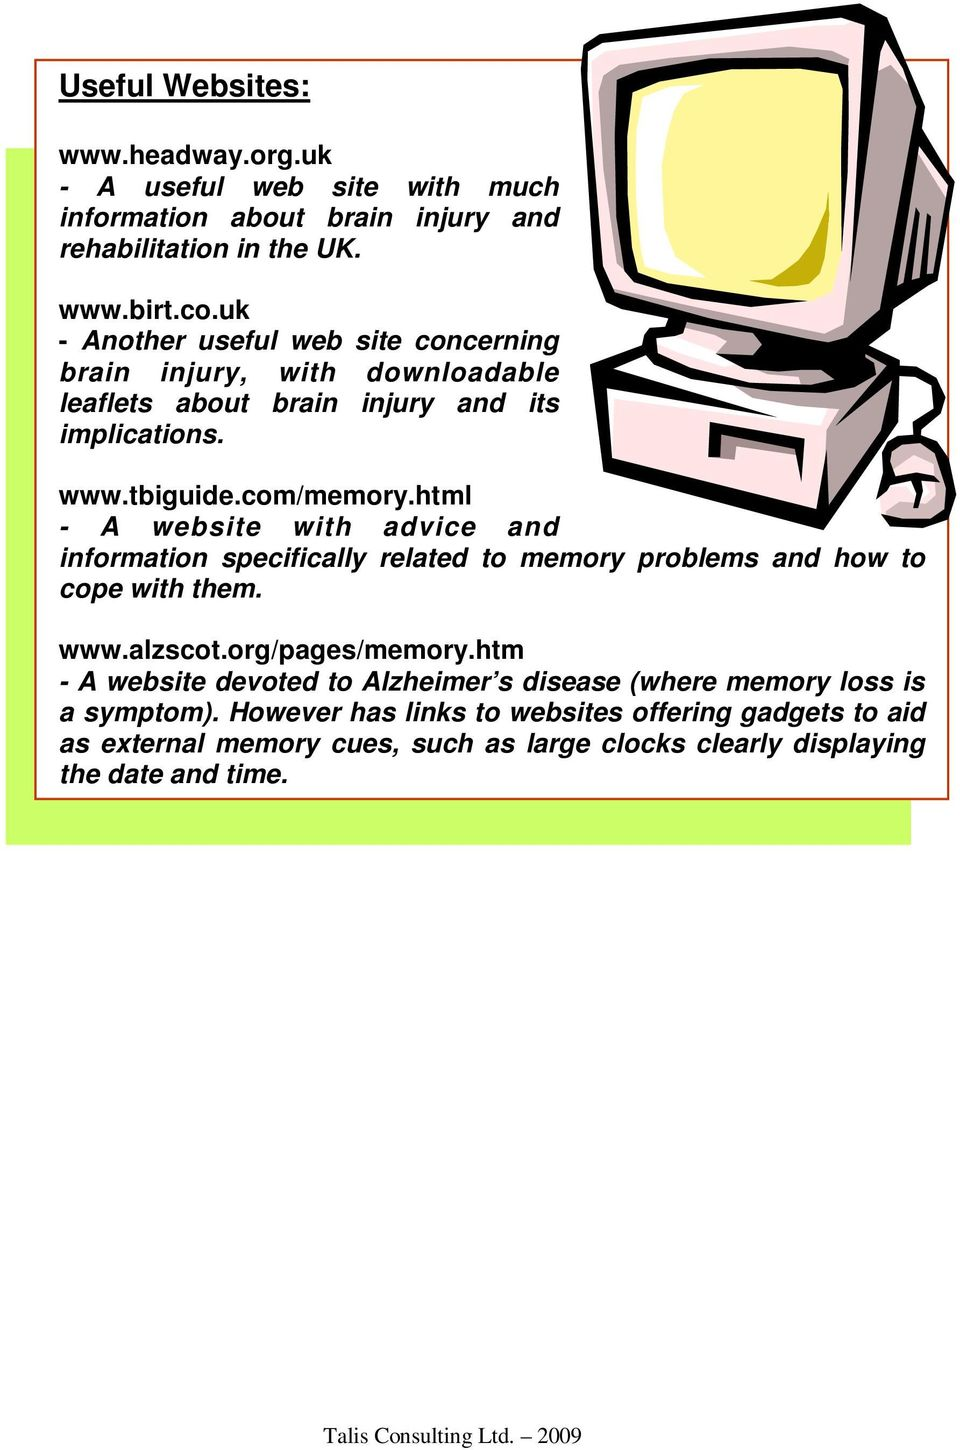 html - A website with advice and information specifically related to memory problems and how to cope with them. www.alzscot.org/pages/memory.